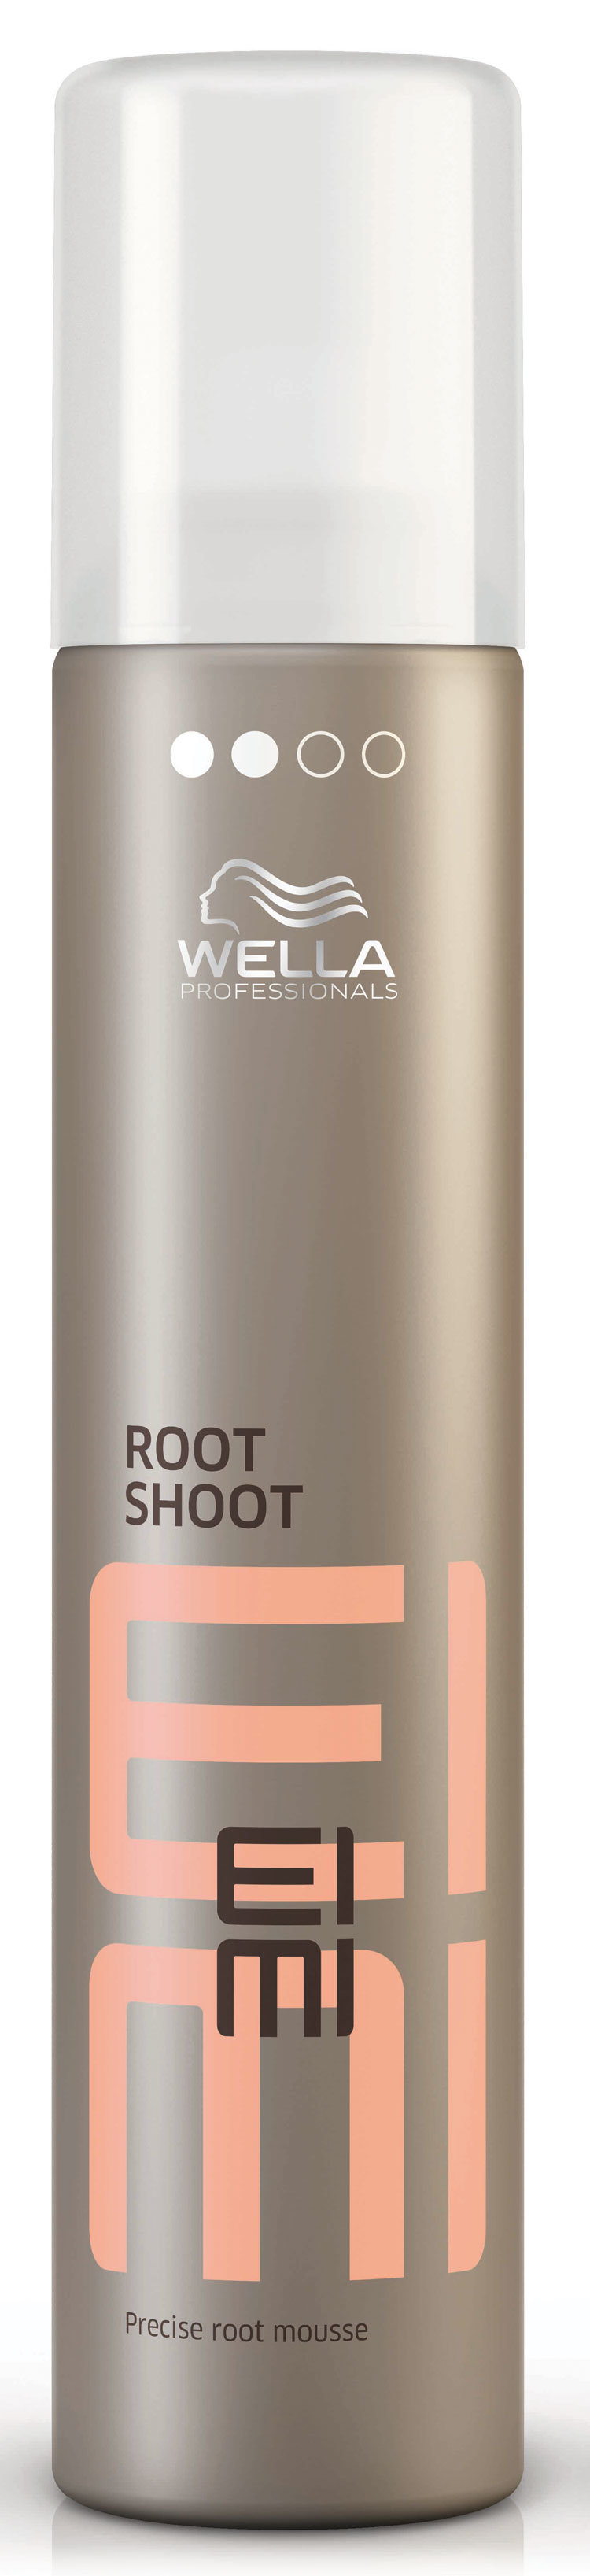 WELLA Спрей-мусс для прикорневого объема ROOT SHOOT / EIMI 75мл -  Муссы